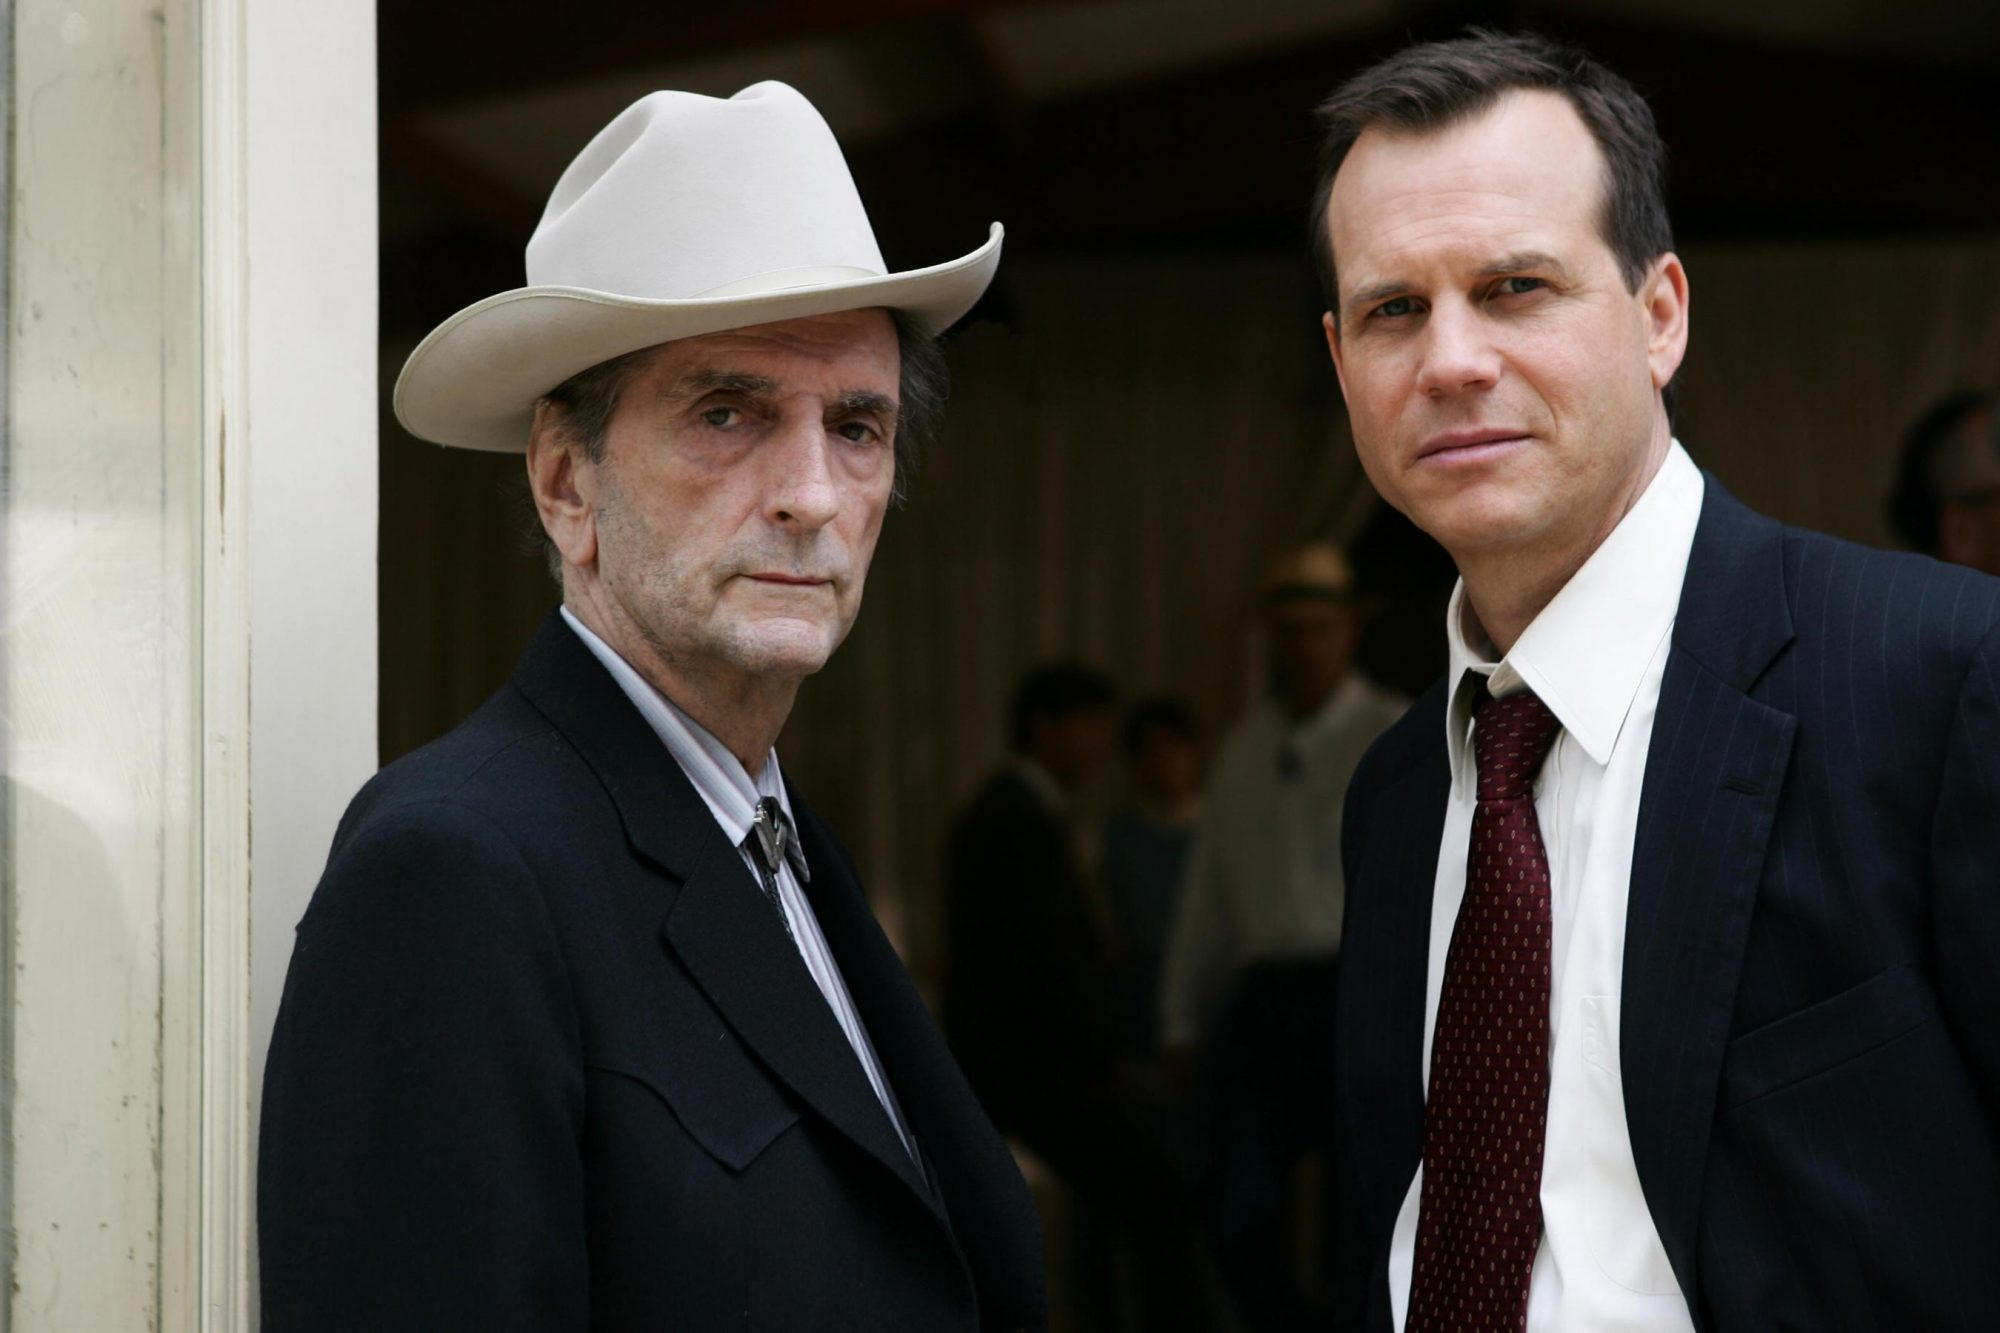 Harry Dean Stanton with Bill Paxton on HBO's Big Love